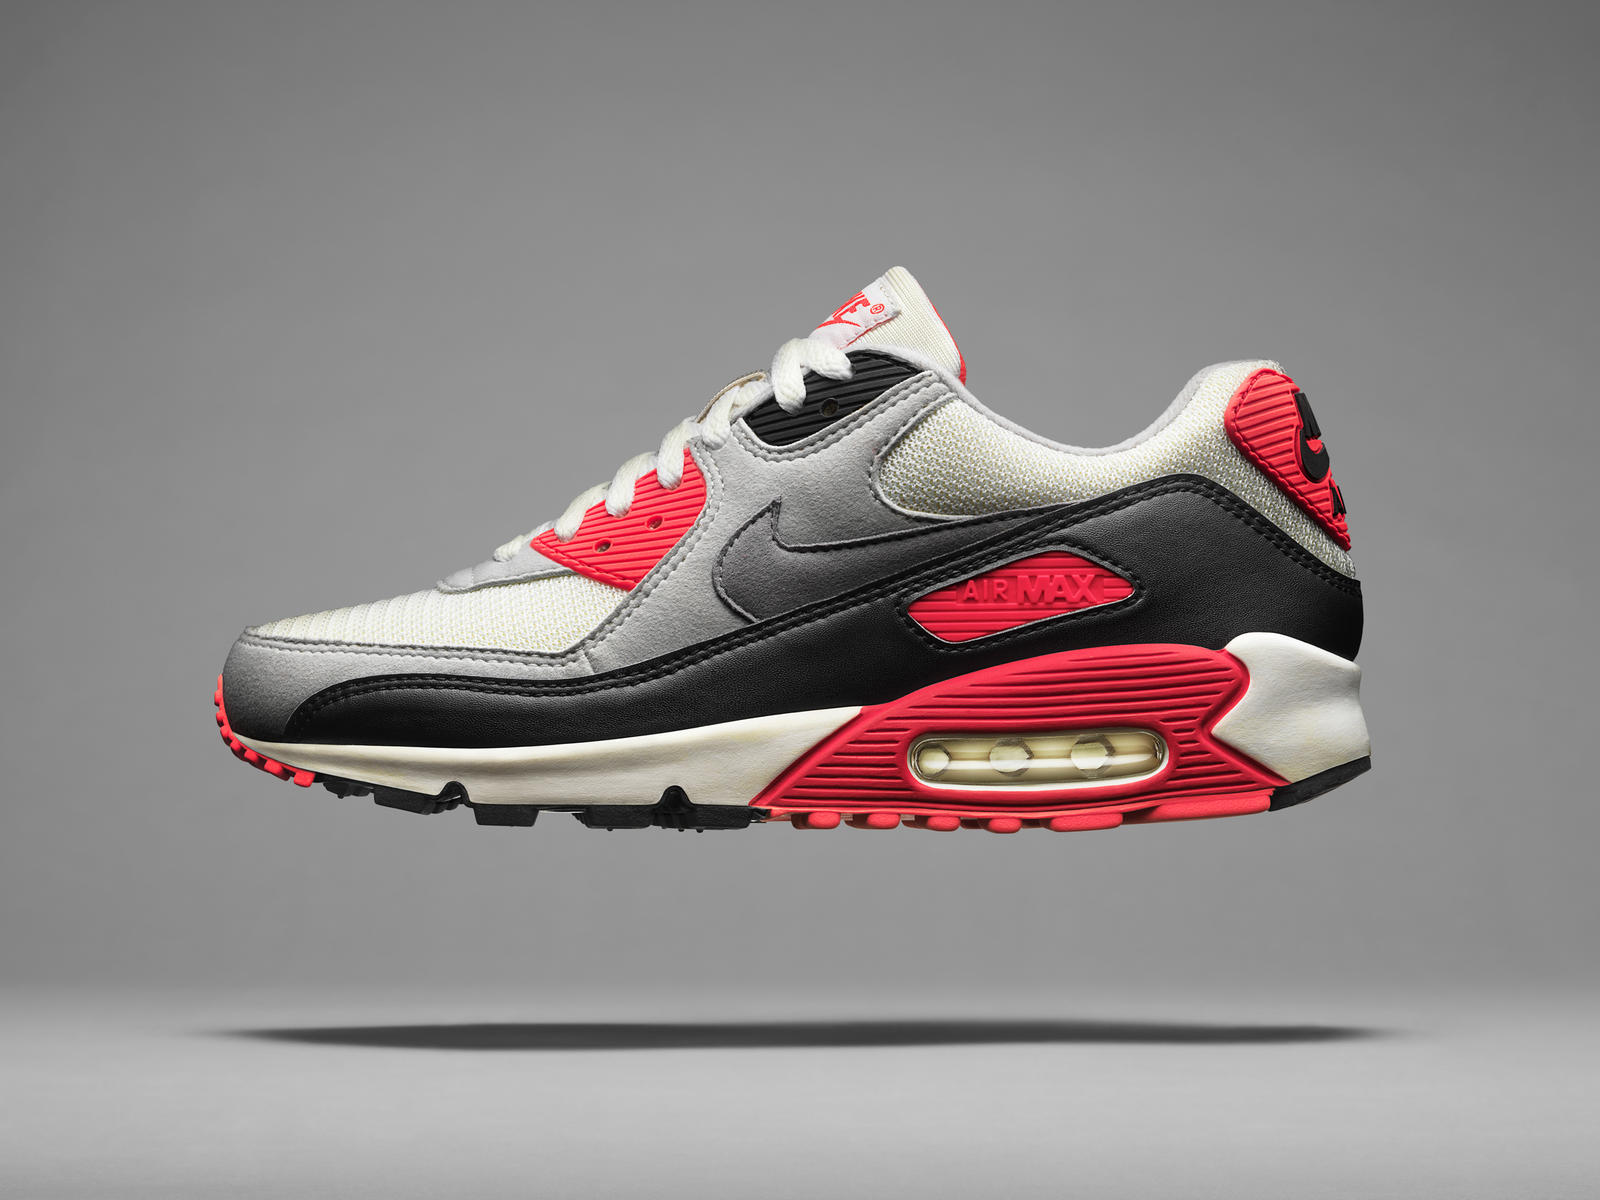 ab61b273e38d Masters of Max  The Air Max Icons - Nike News